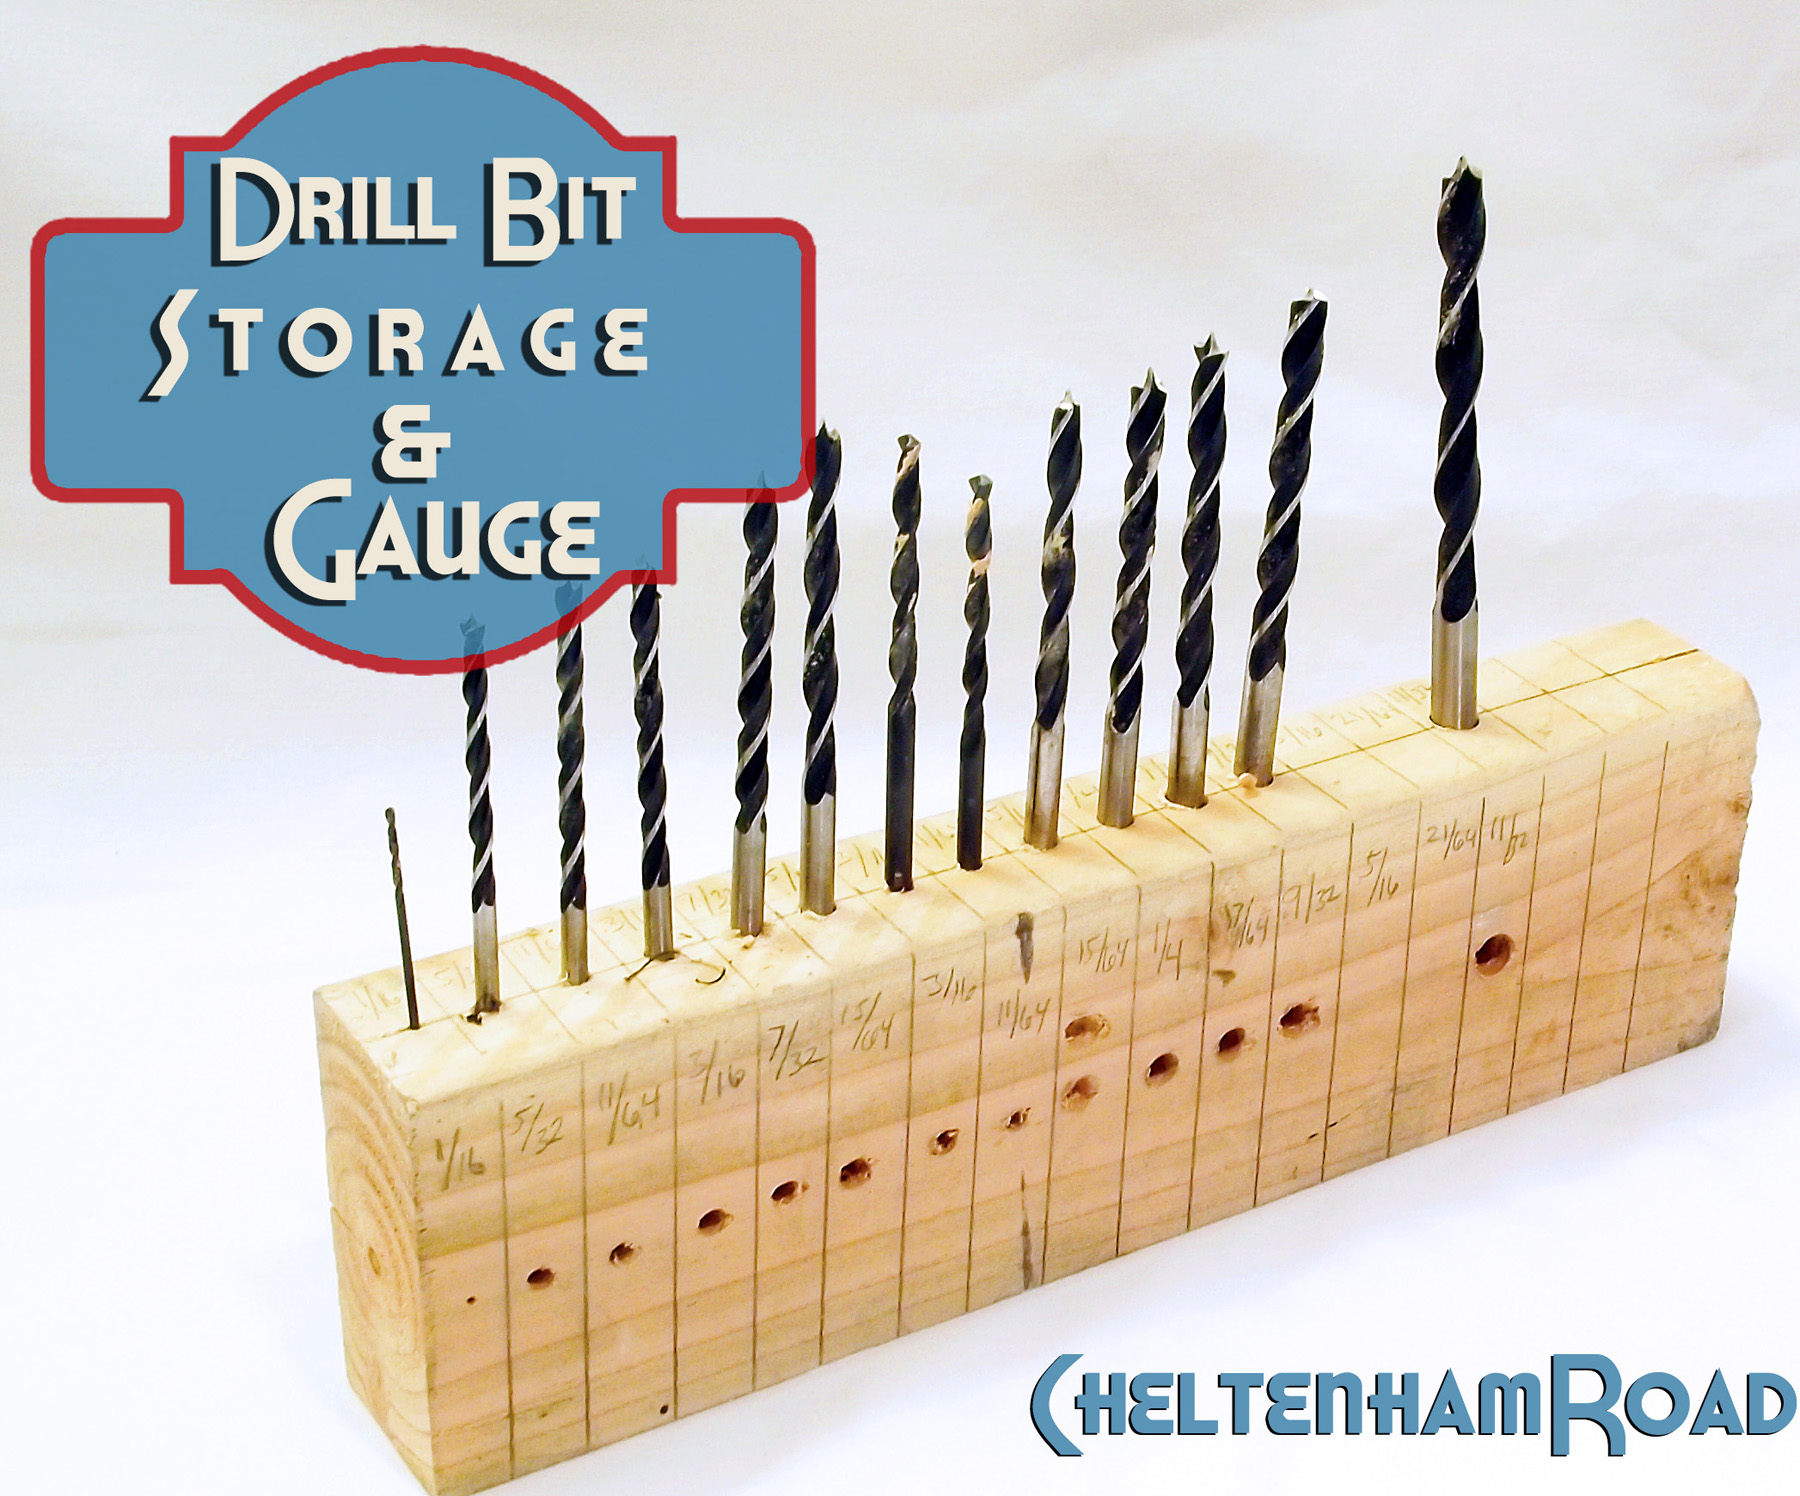 diy drill bit holder. drill bit storage and gauge tutorial cheltenham road diy holder